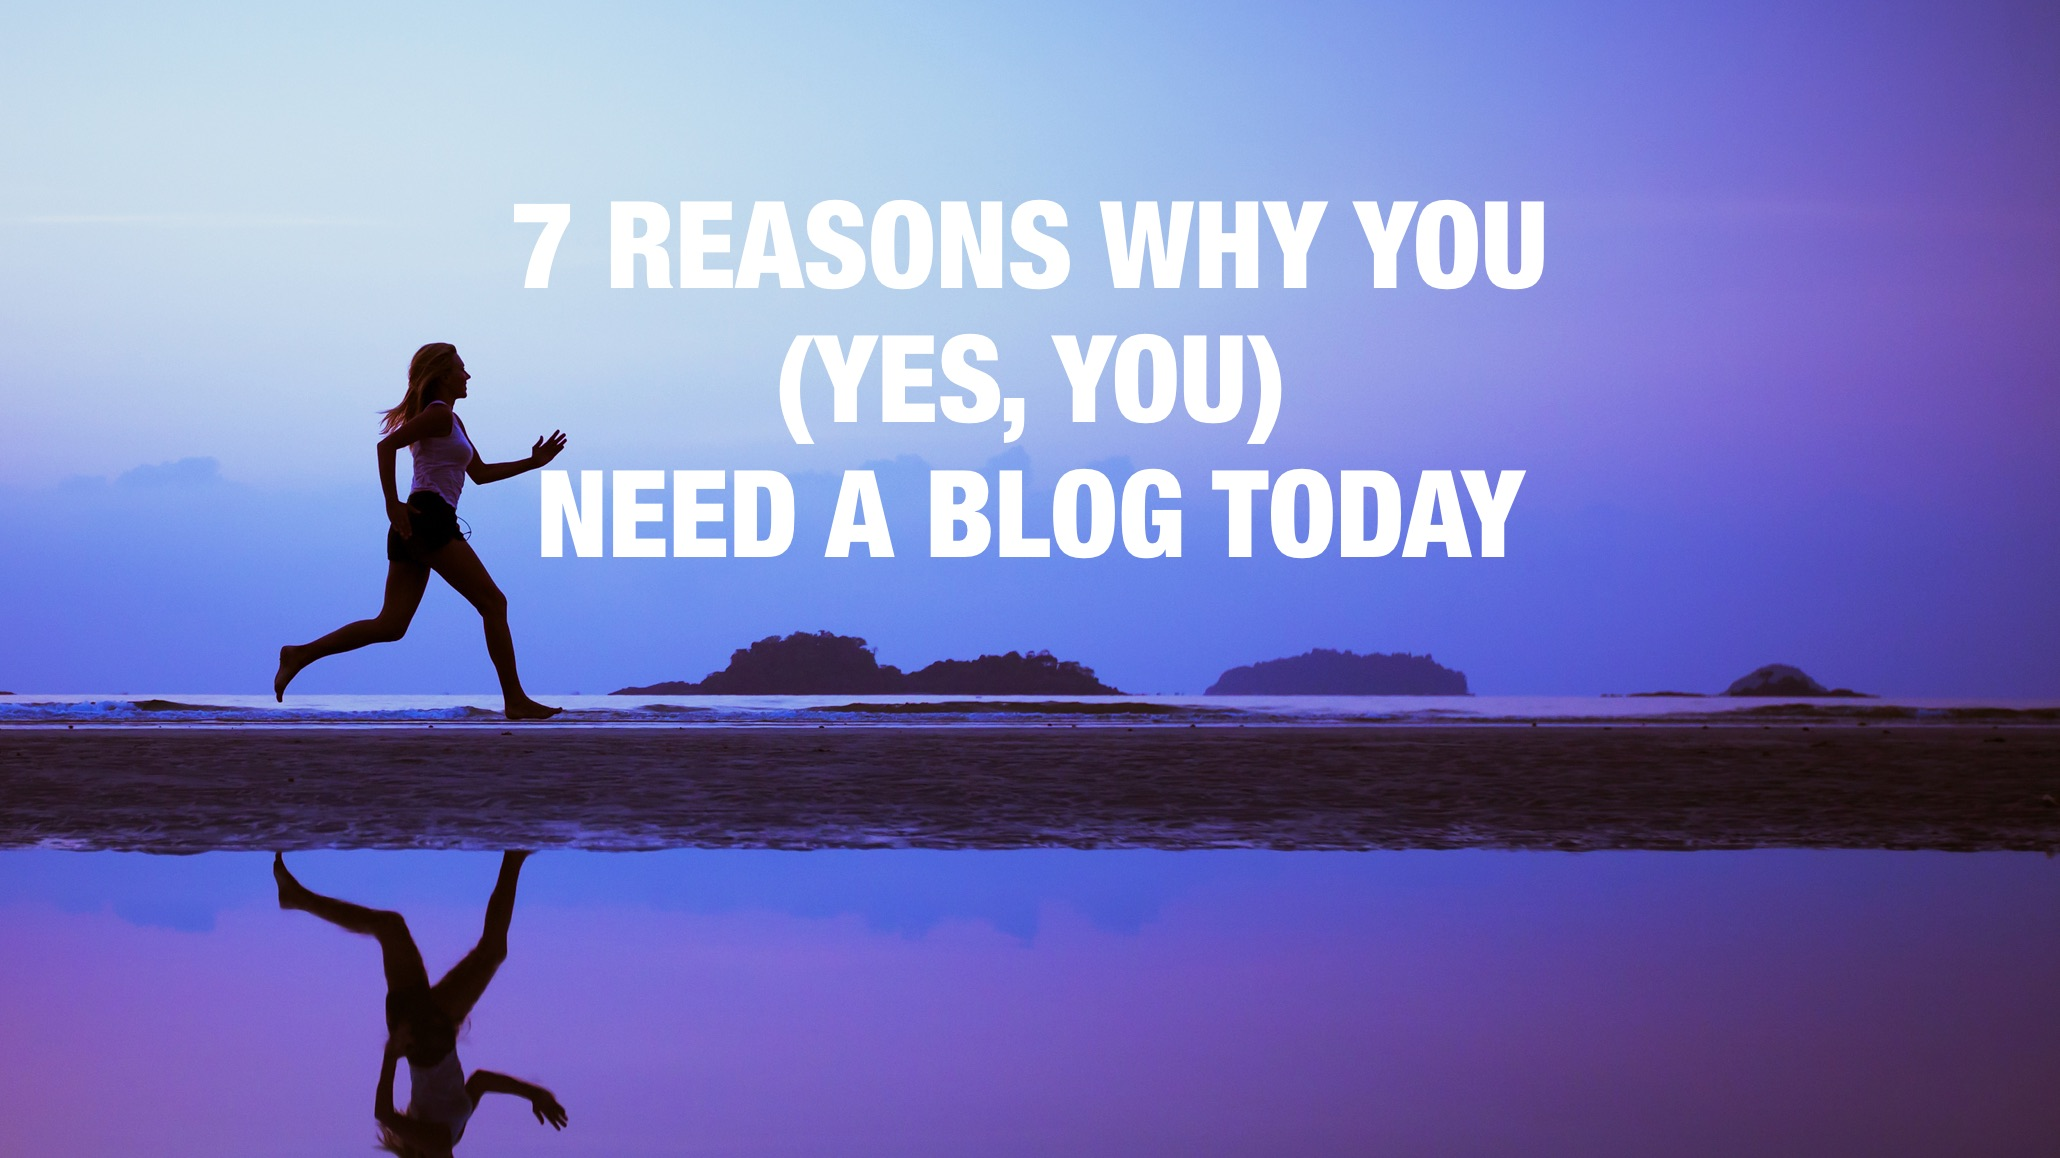 The ultimate list: 7 reasons why you (yes, you) need a blog today